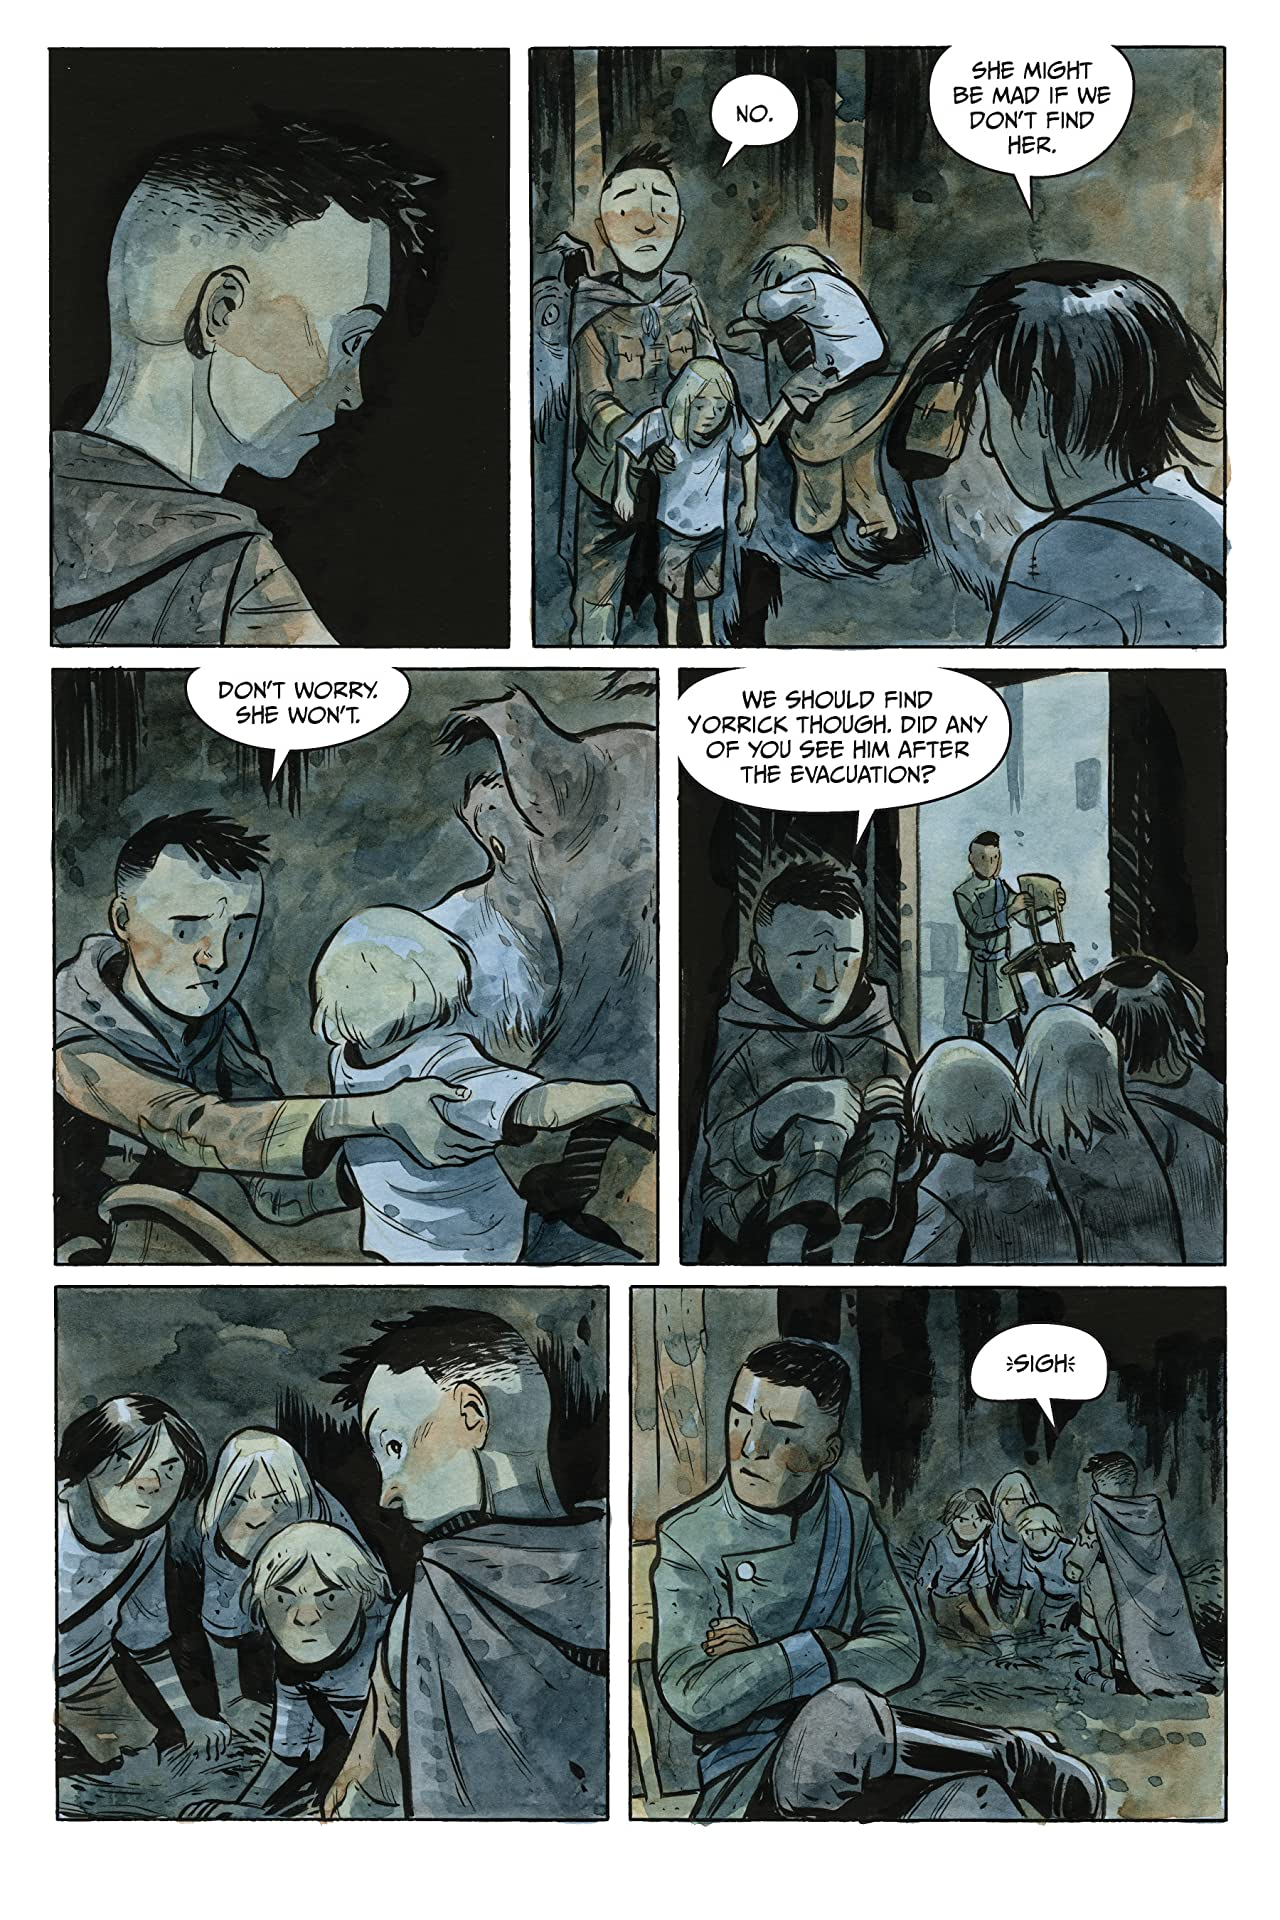 The Stone King (comiXology Originals) #3 (of 4)